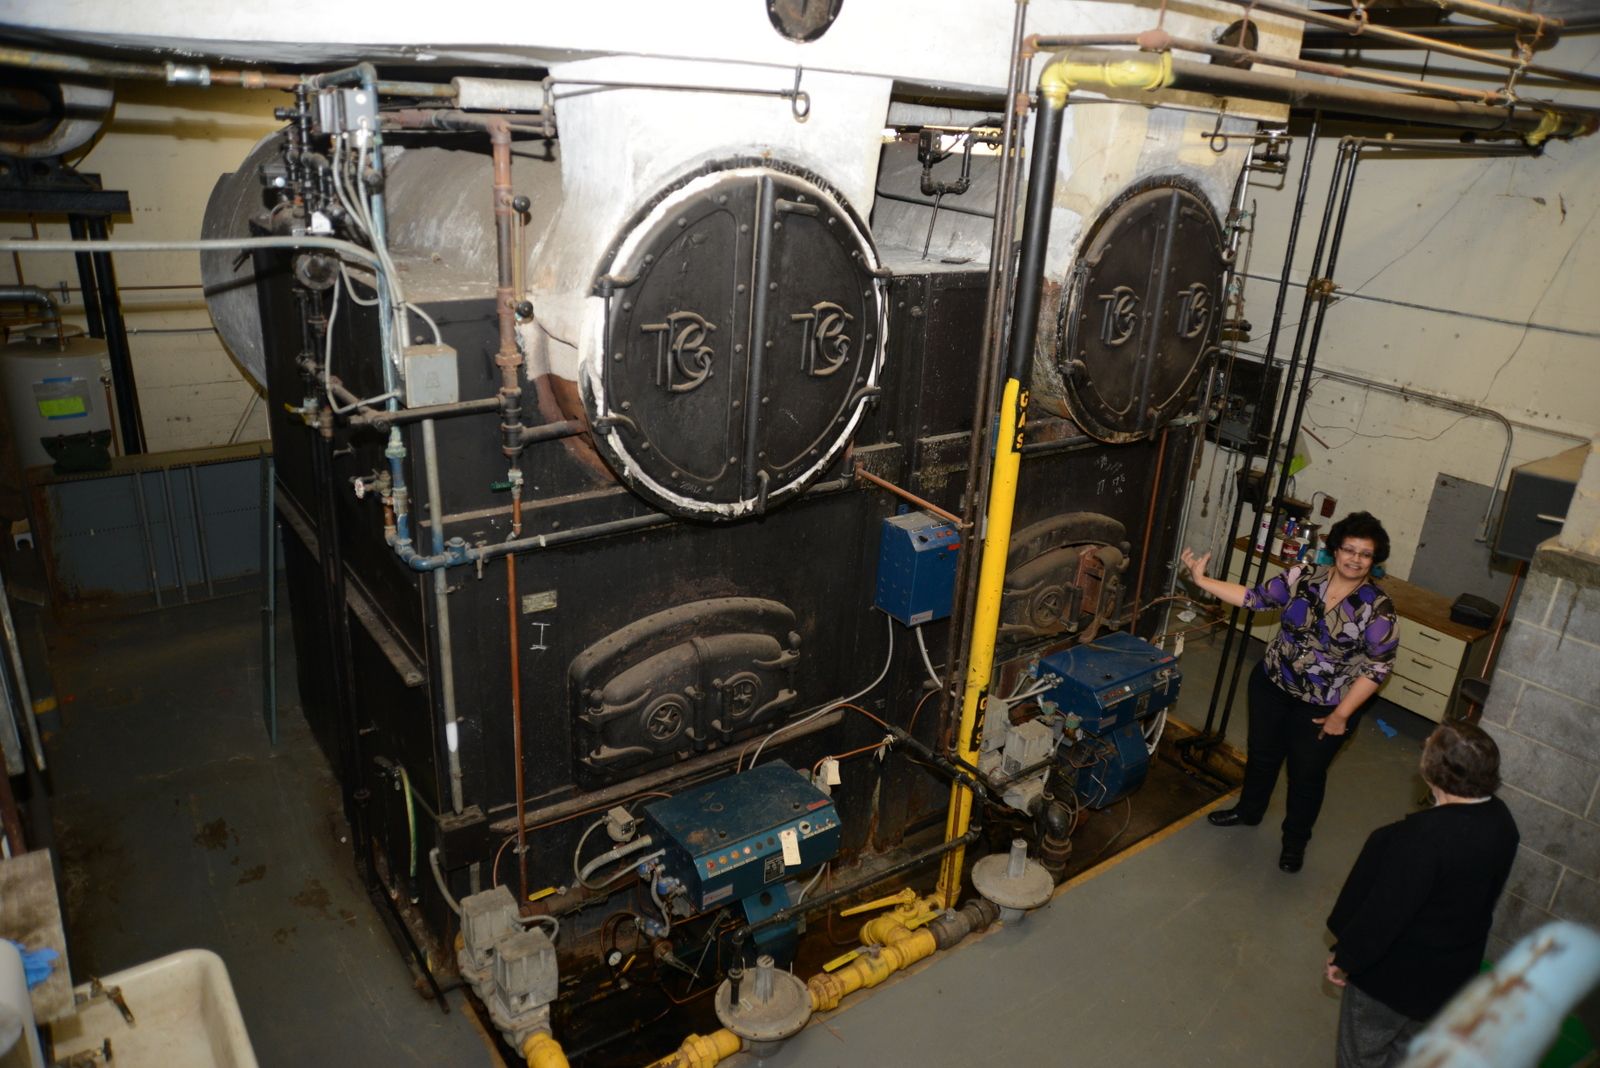 Replacing Relics Of Newtown History: New Boilers For Edmond Town ...